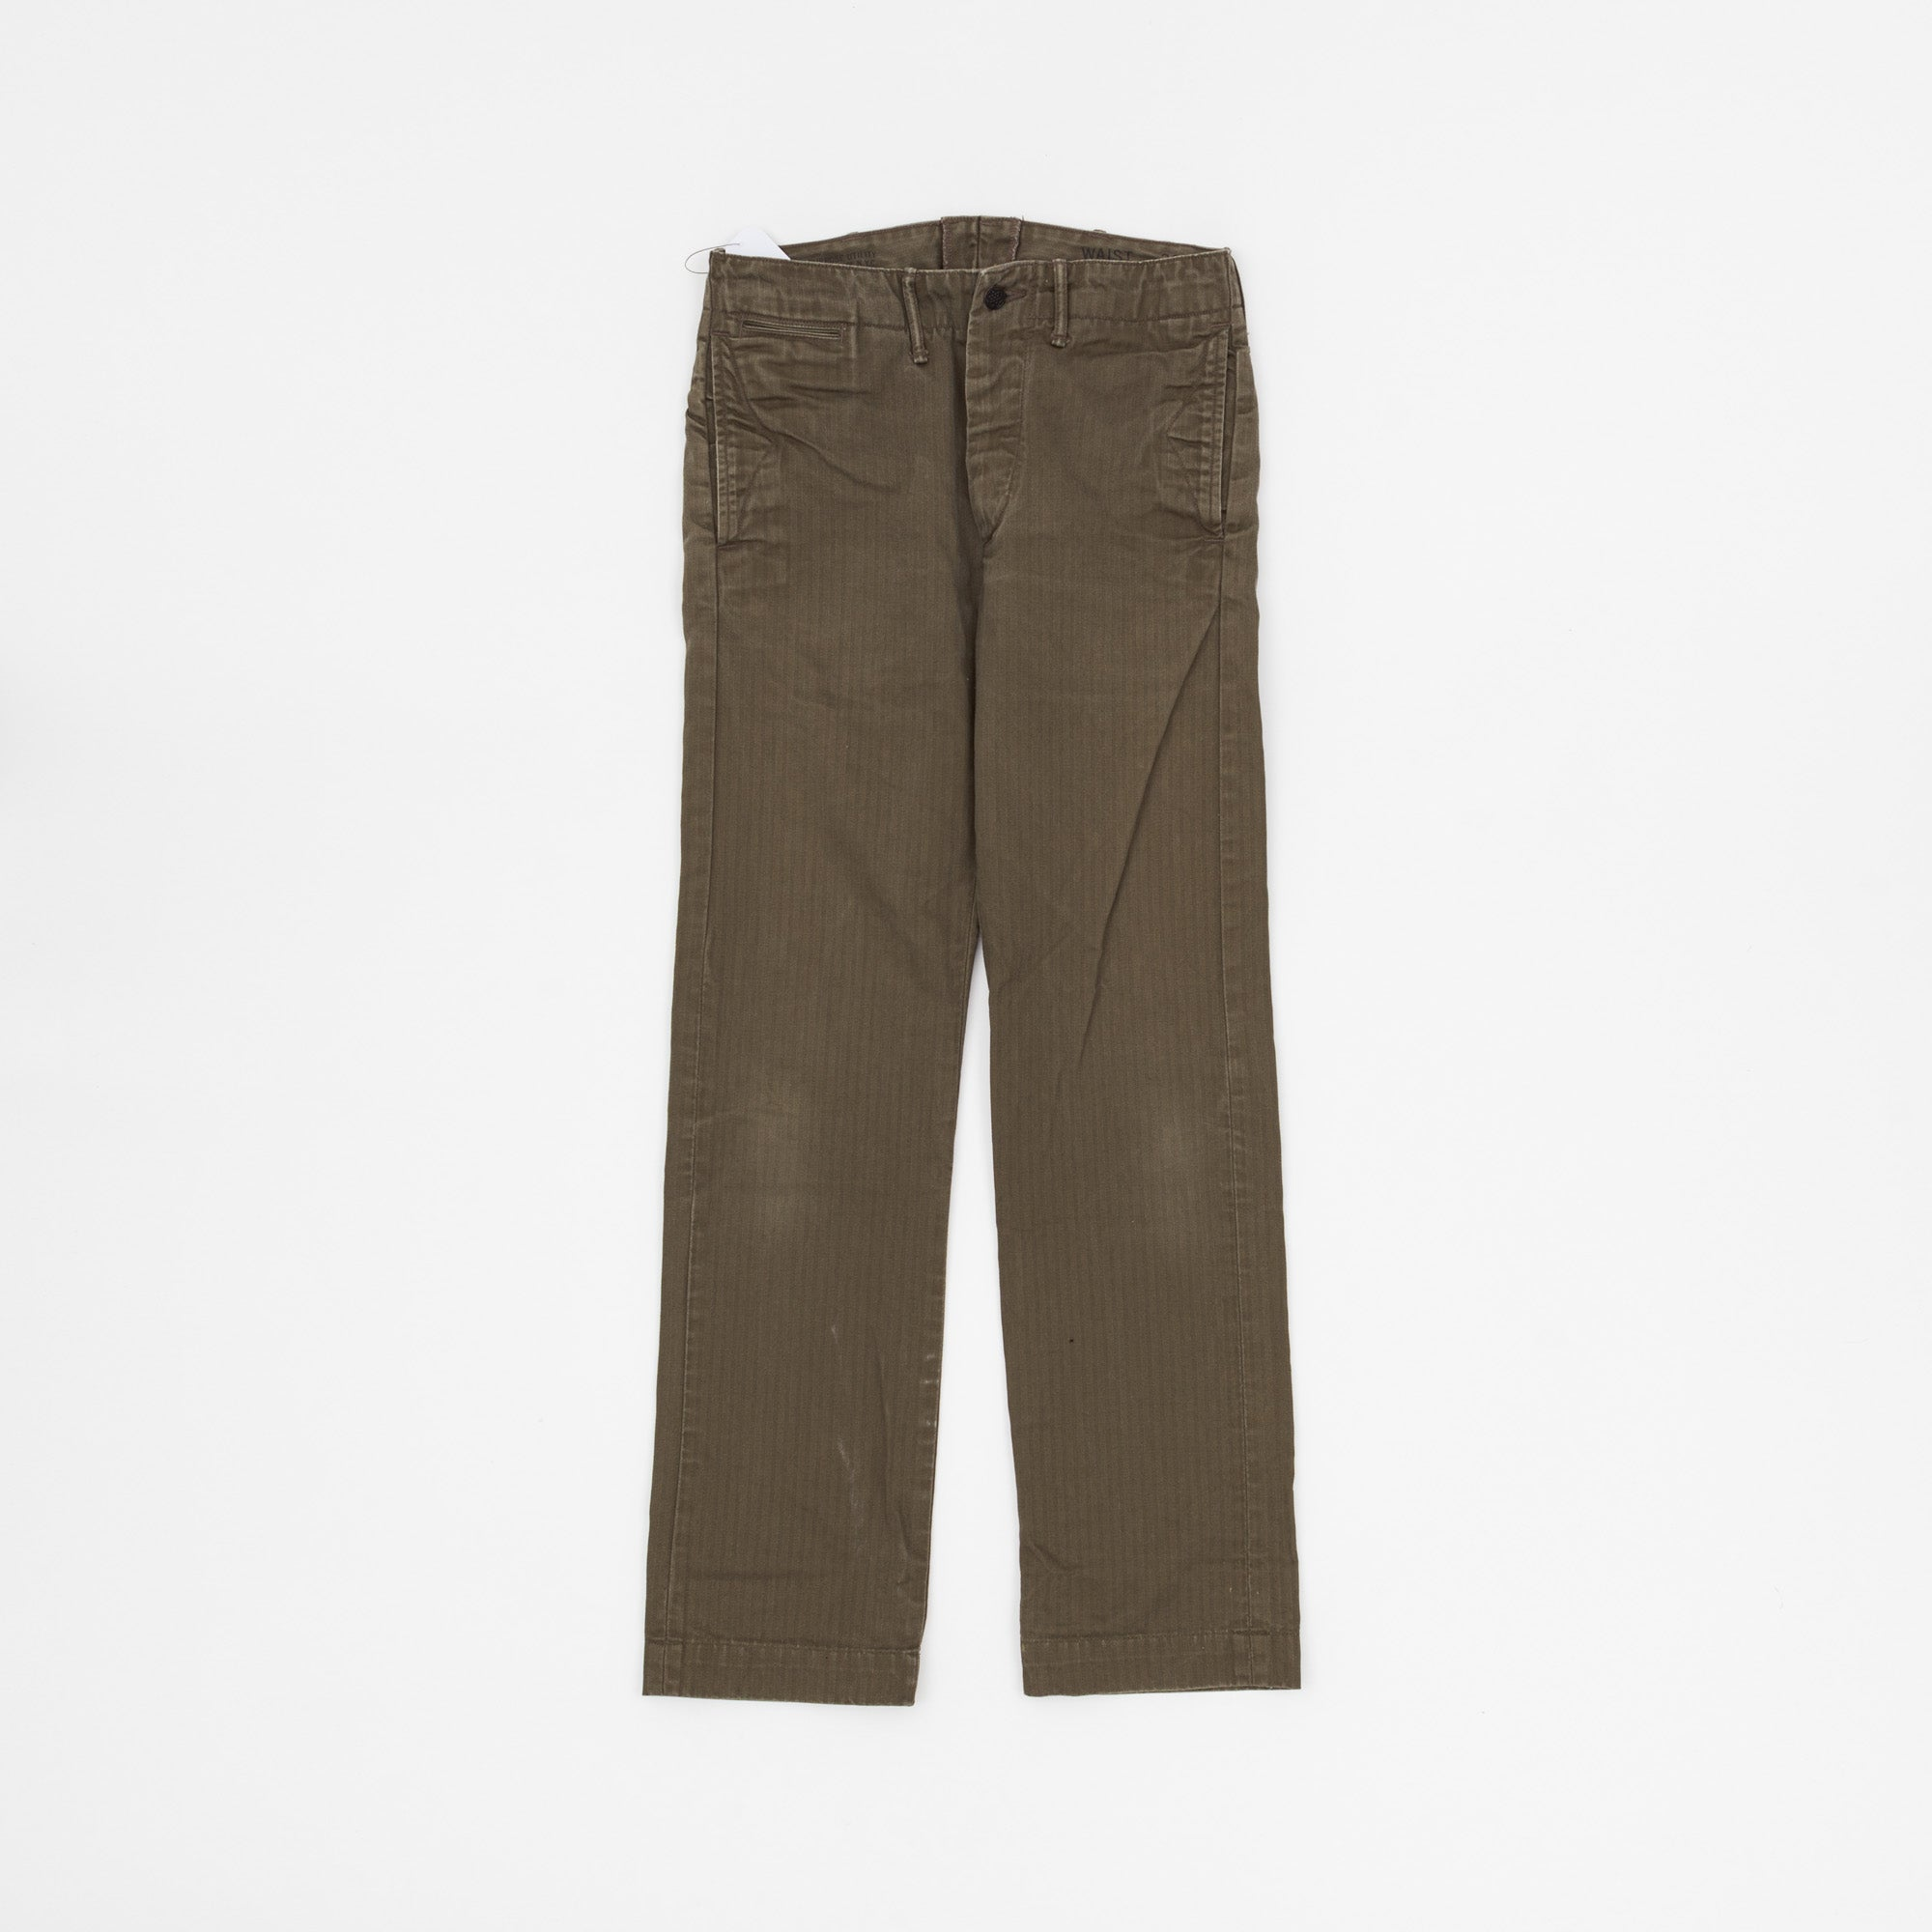 RRL HBT Officers Field Trousers